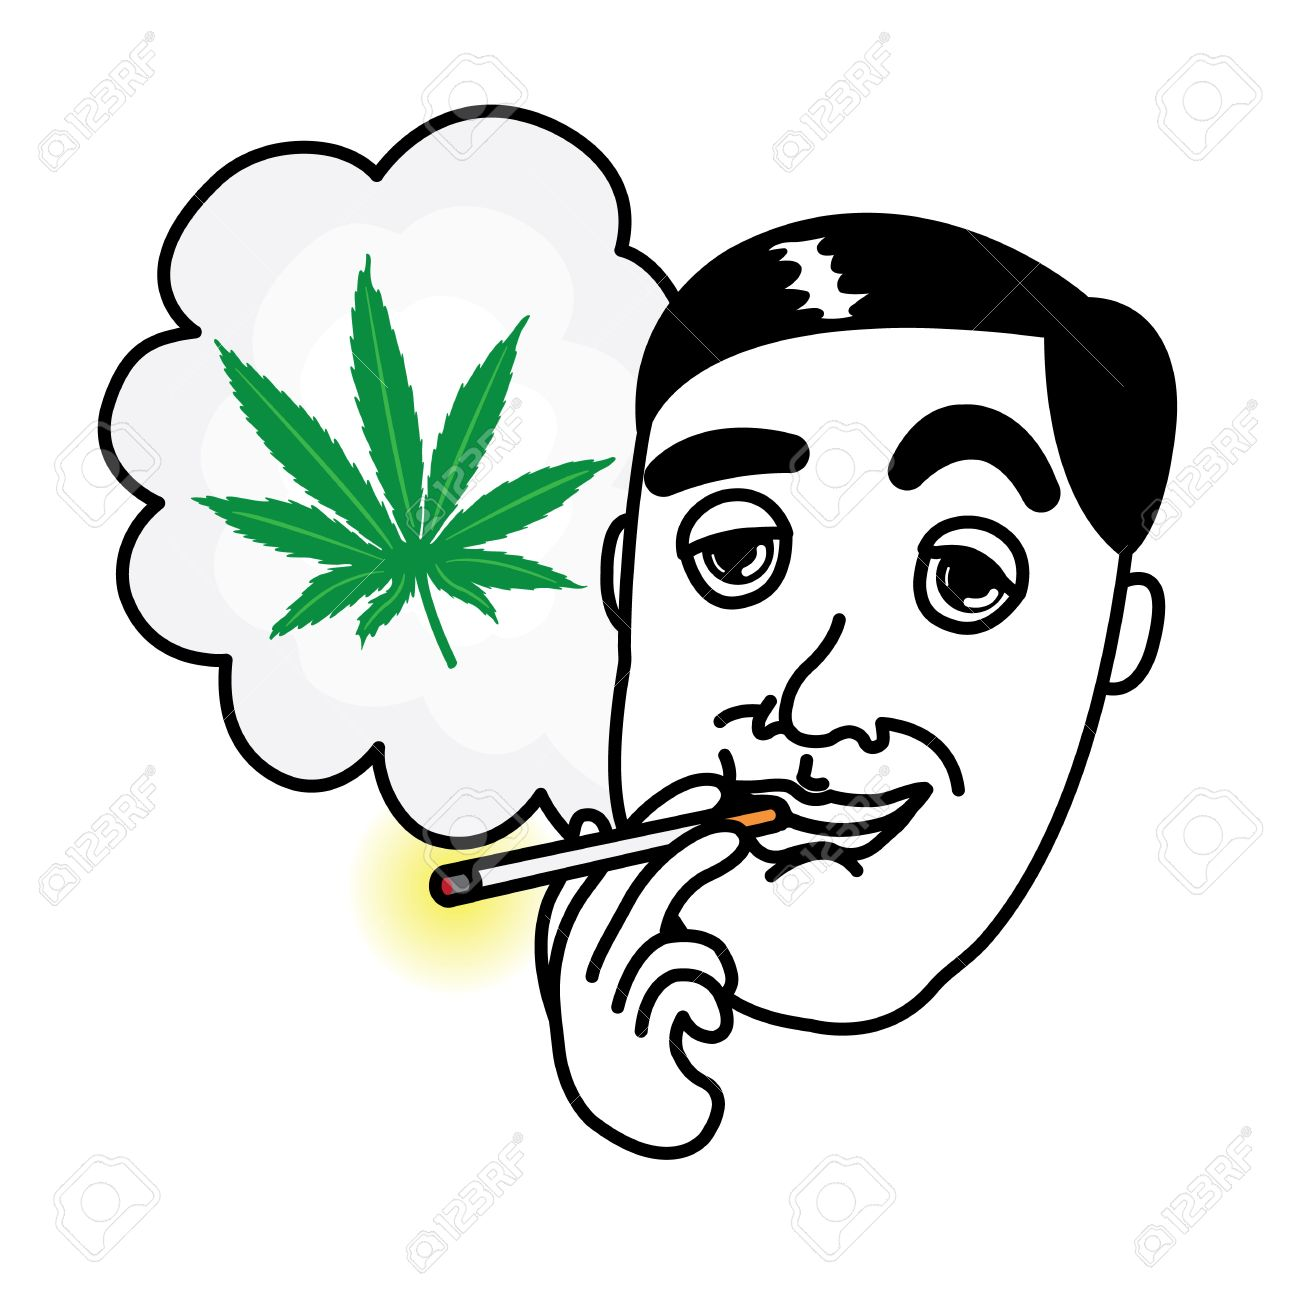 Man Smoking Cannabis Cigarette Royalty Free Cliparts, Vectors, And.